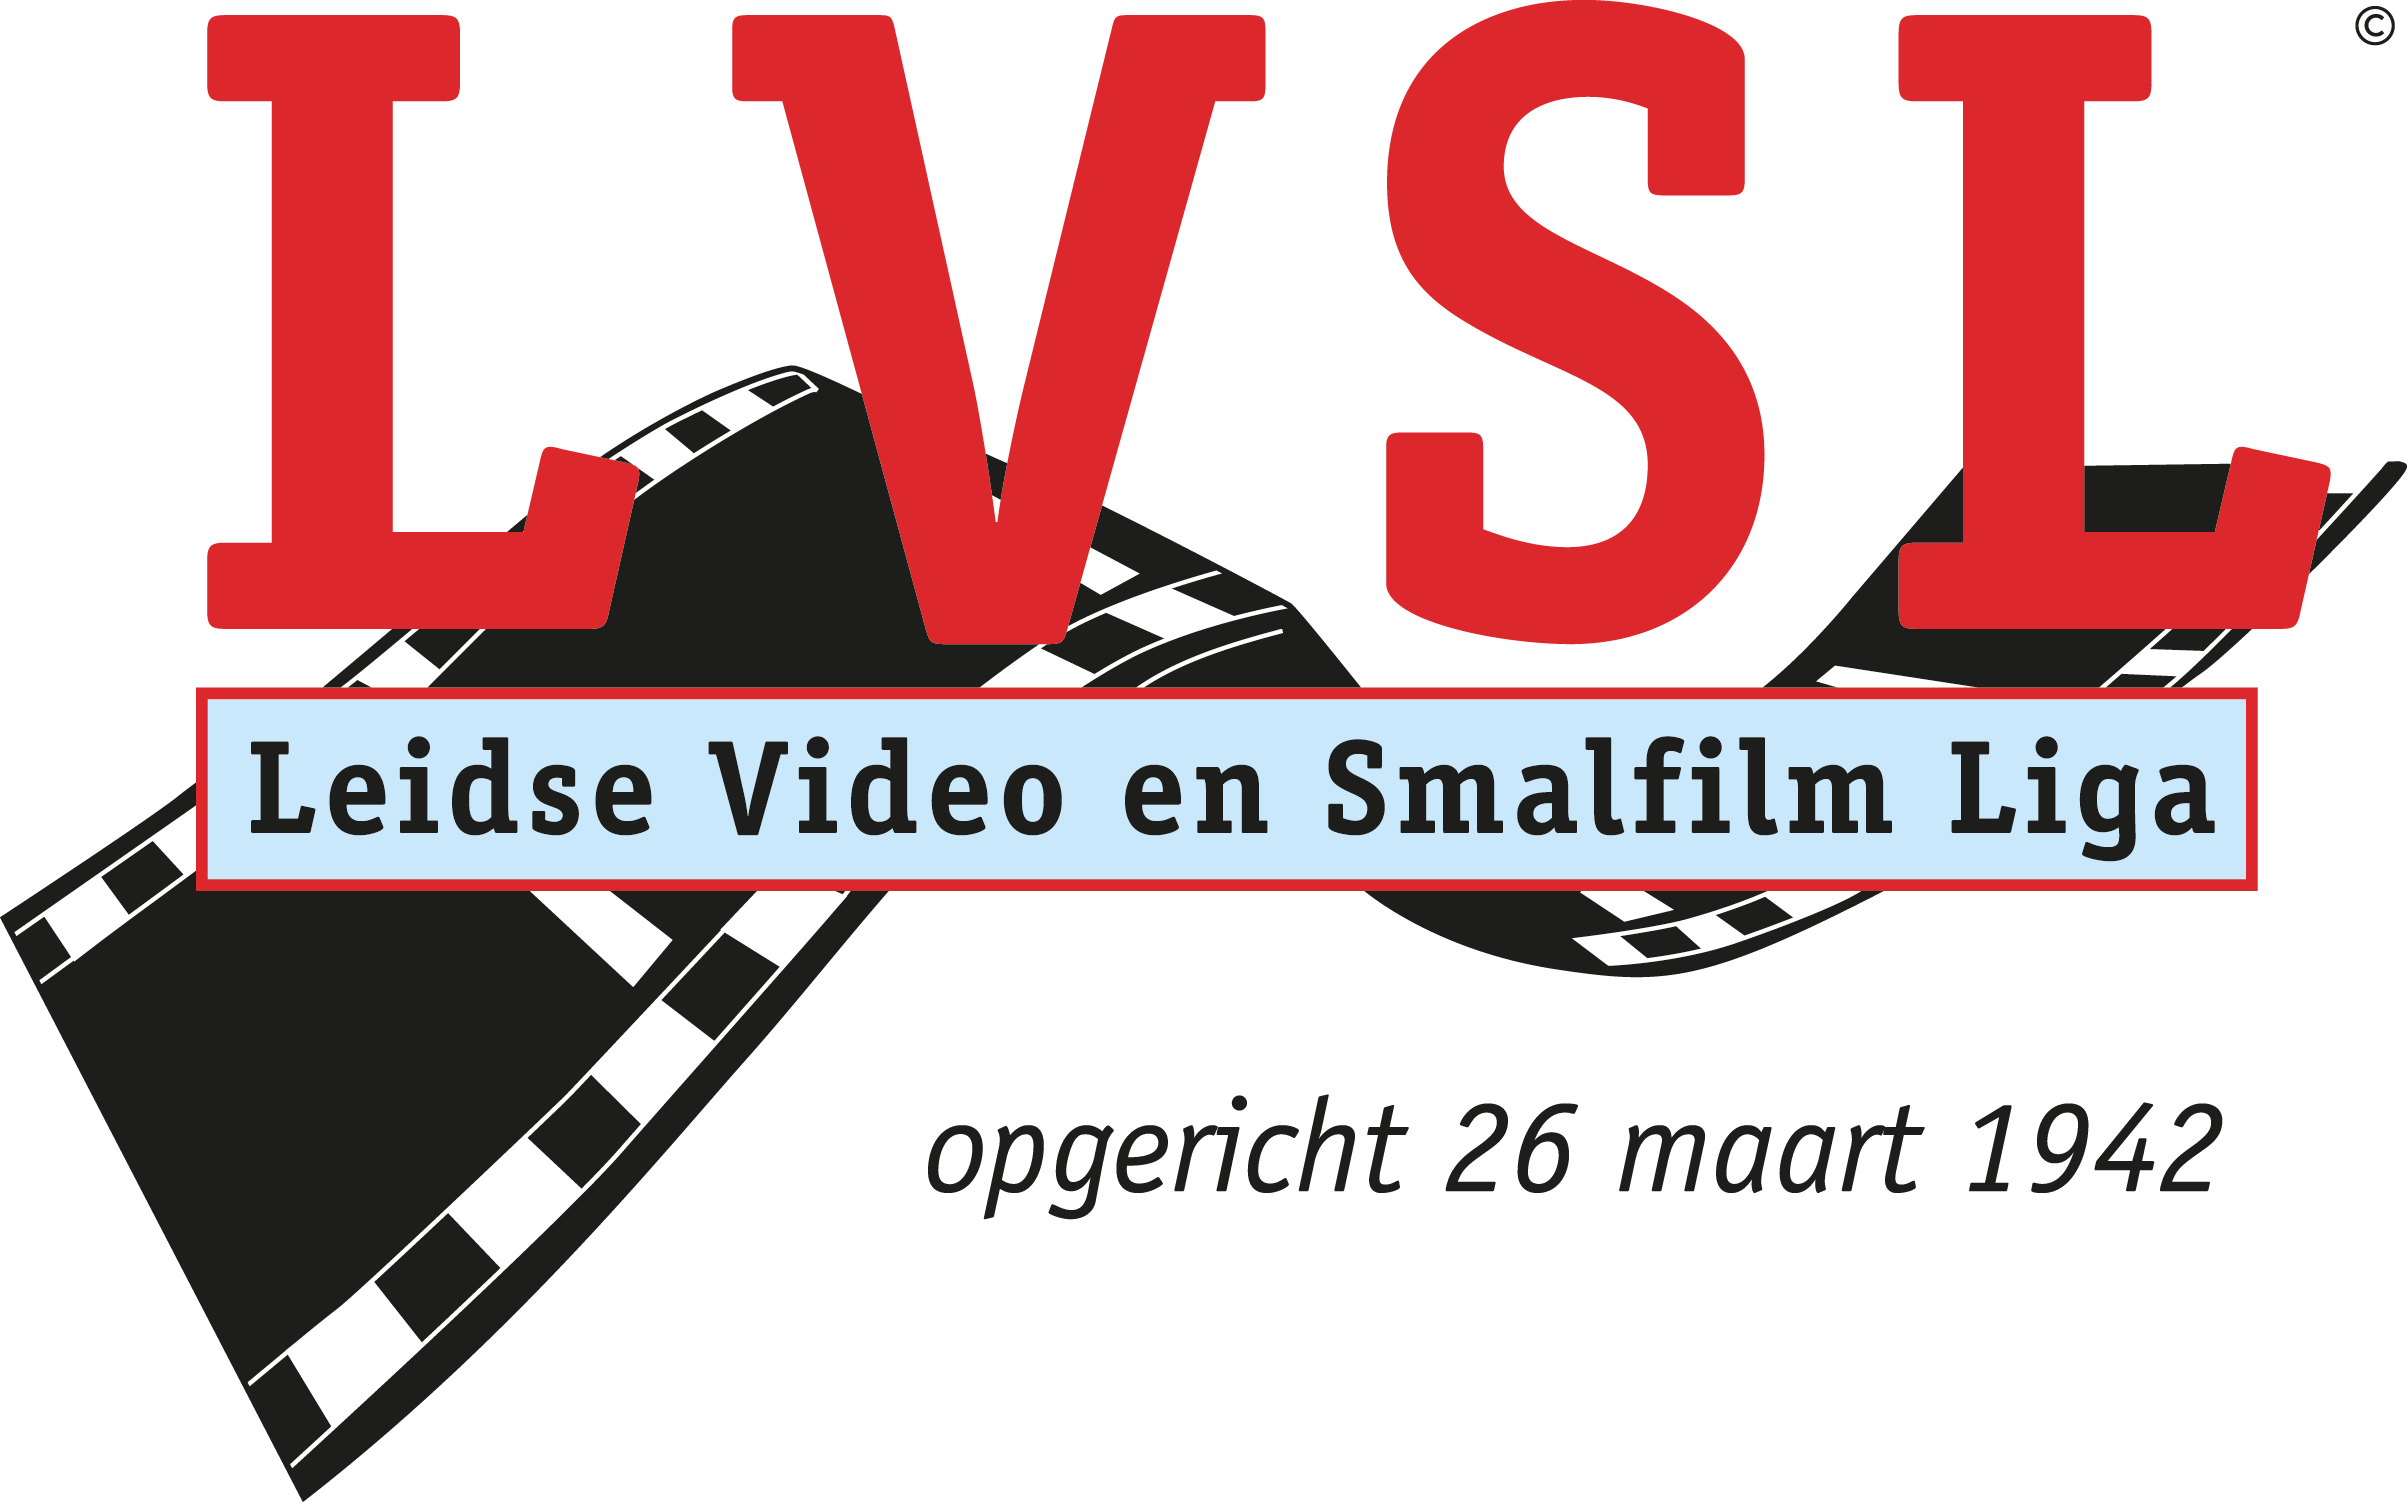 Leidse Video en Smalfilm Liga